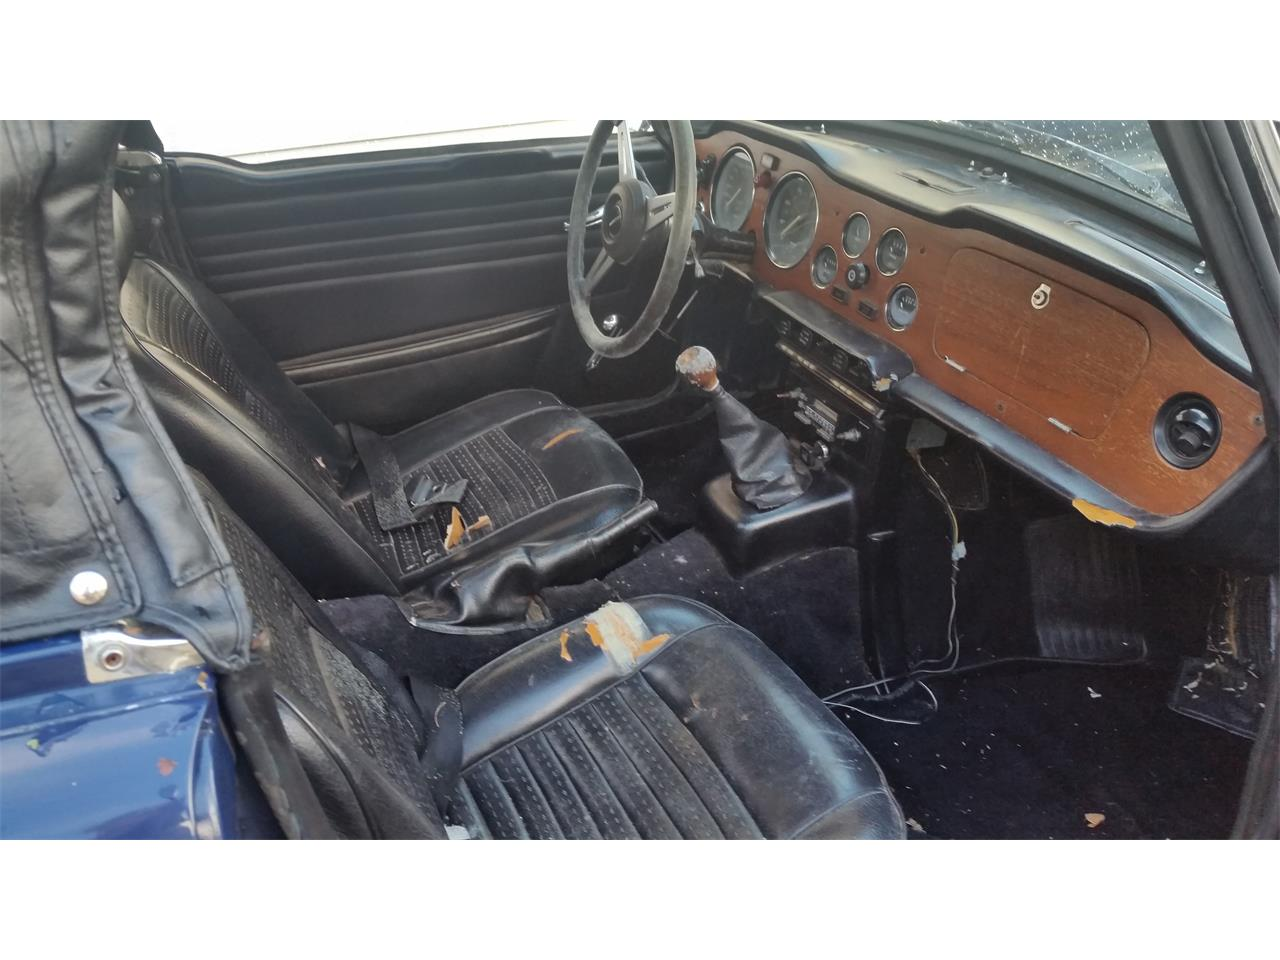 1973 Triumph TR6 for sale in Carnation, WA – photo 12